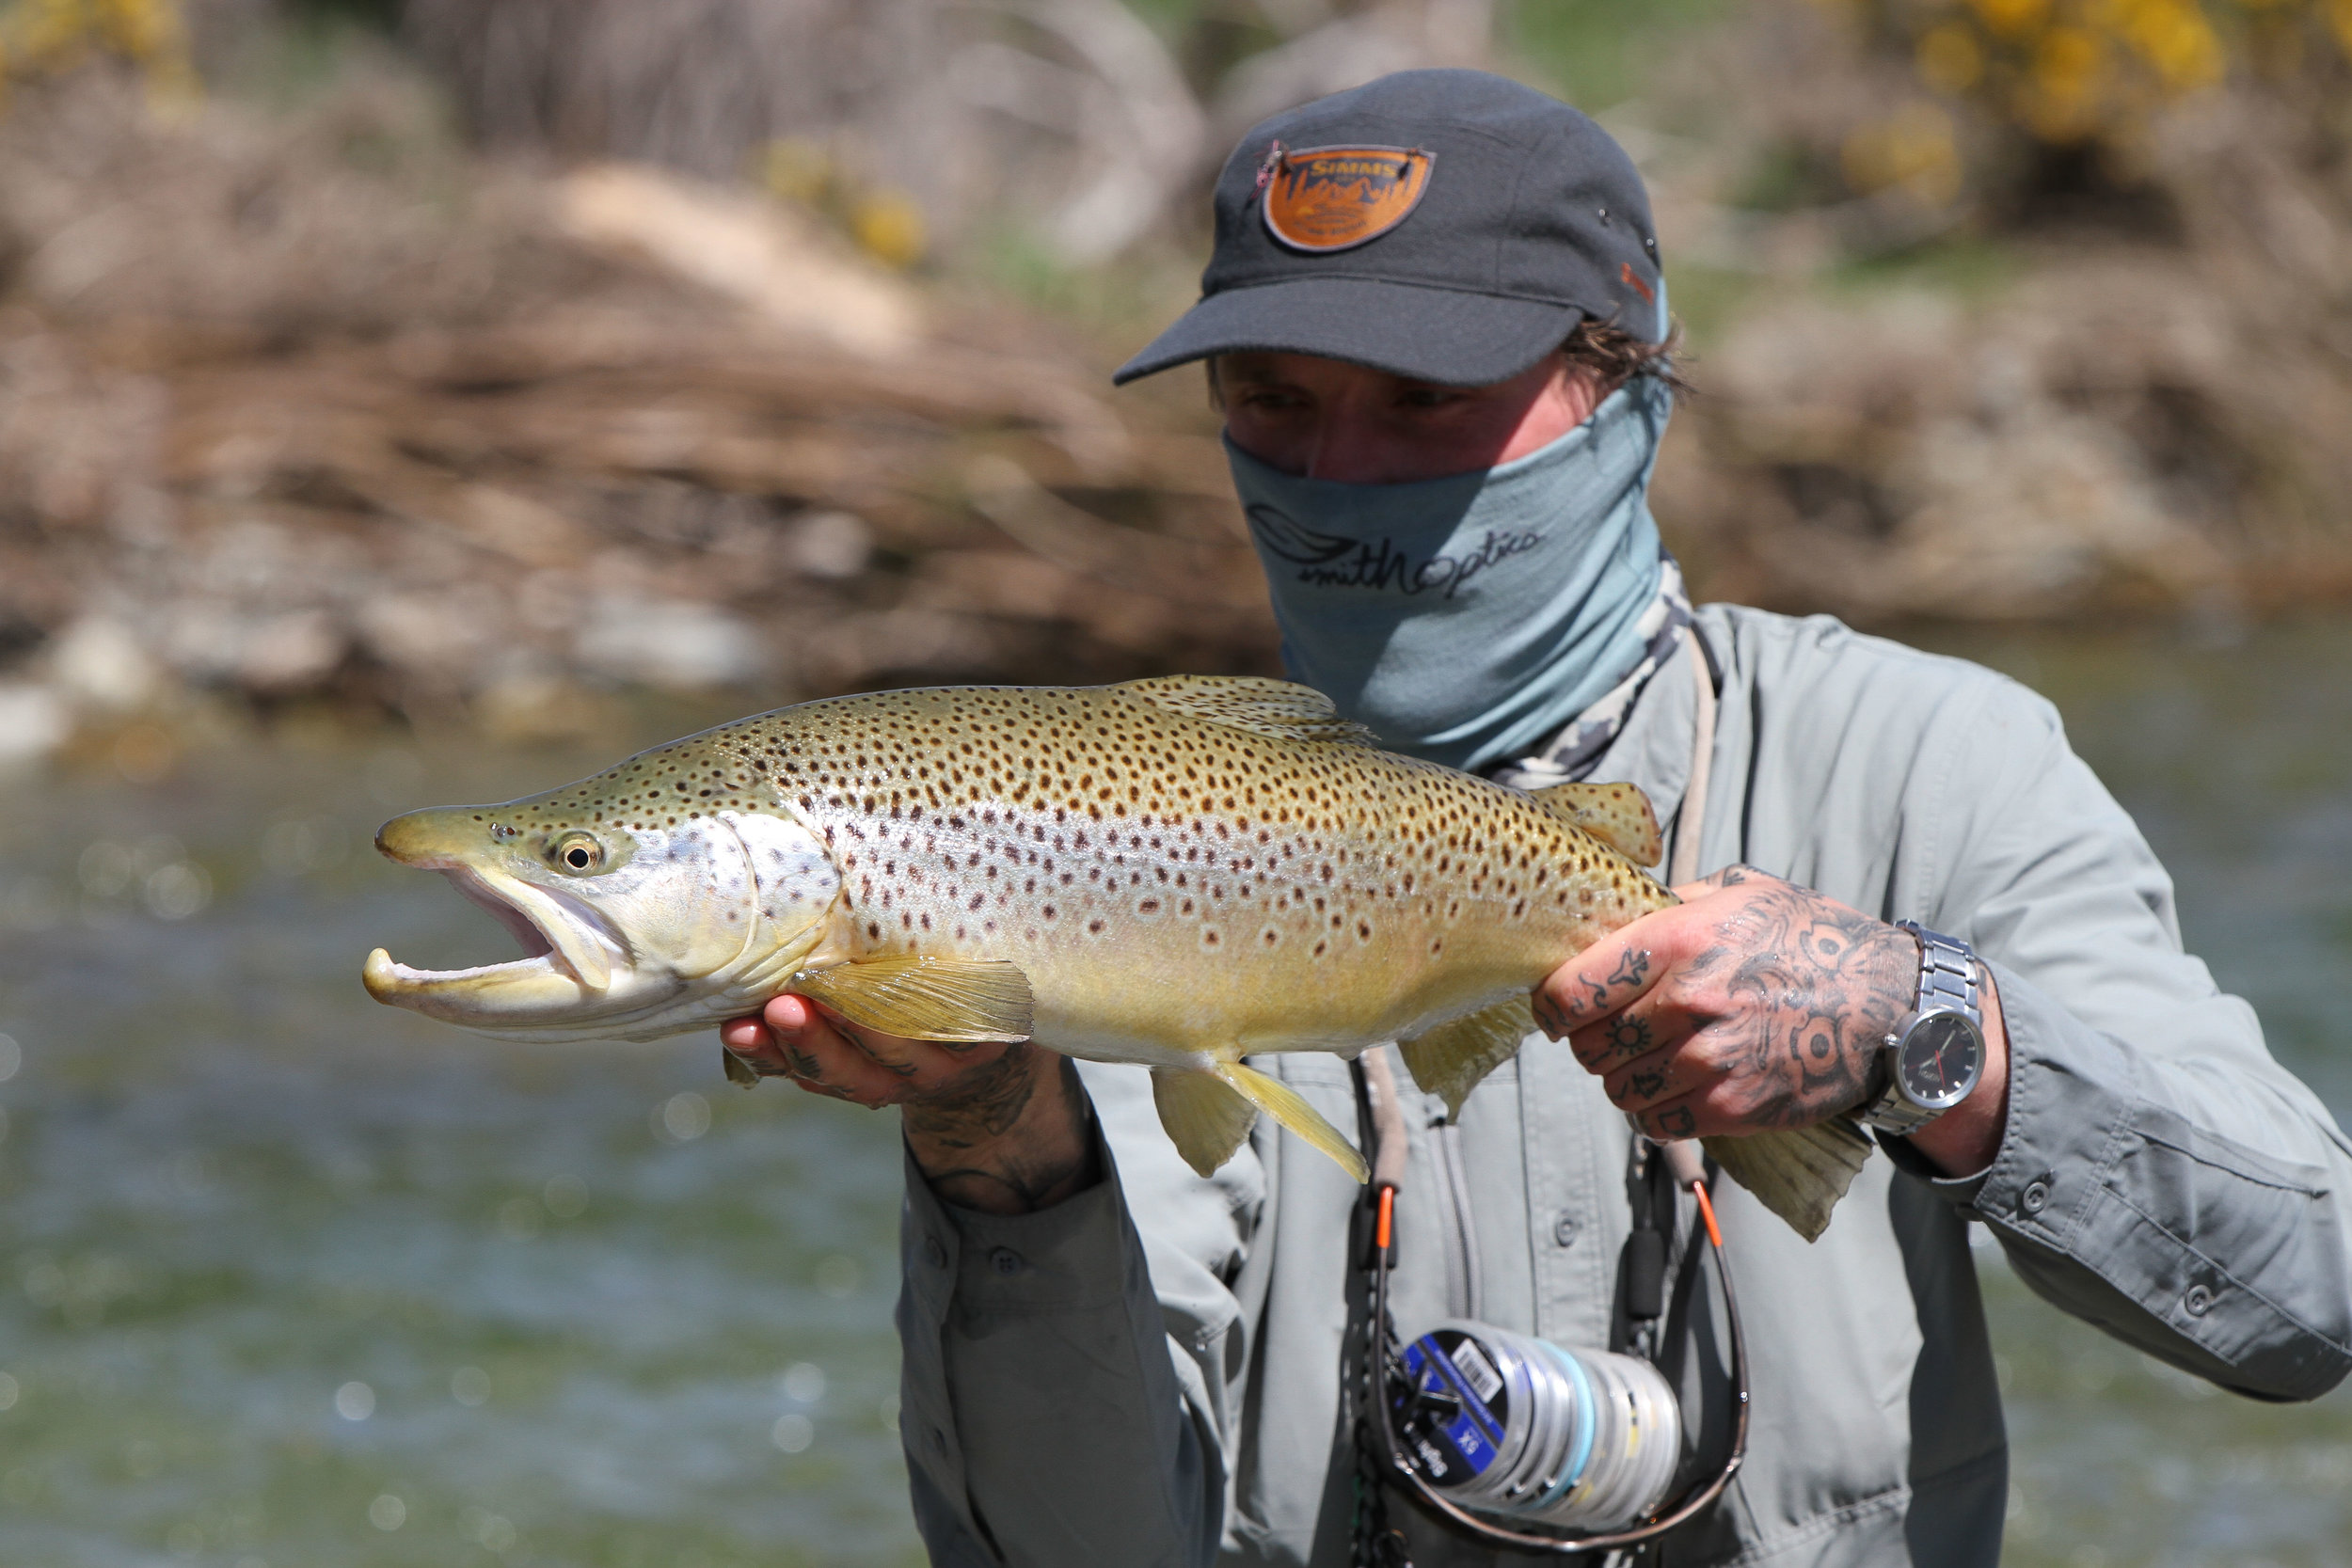 DRY FLY EATER FROM A SKINNY WATER